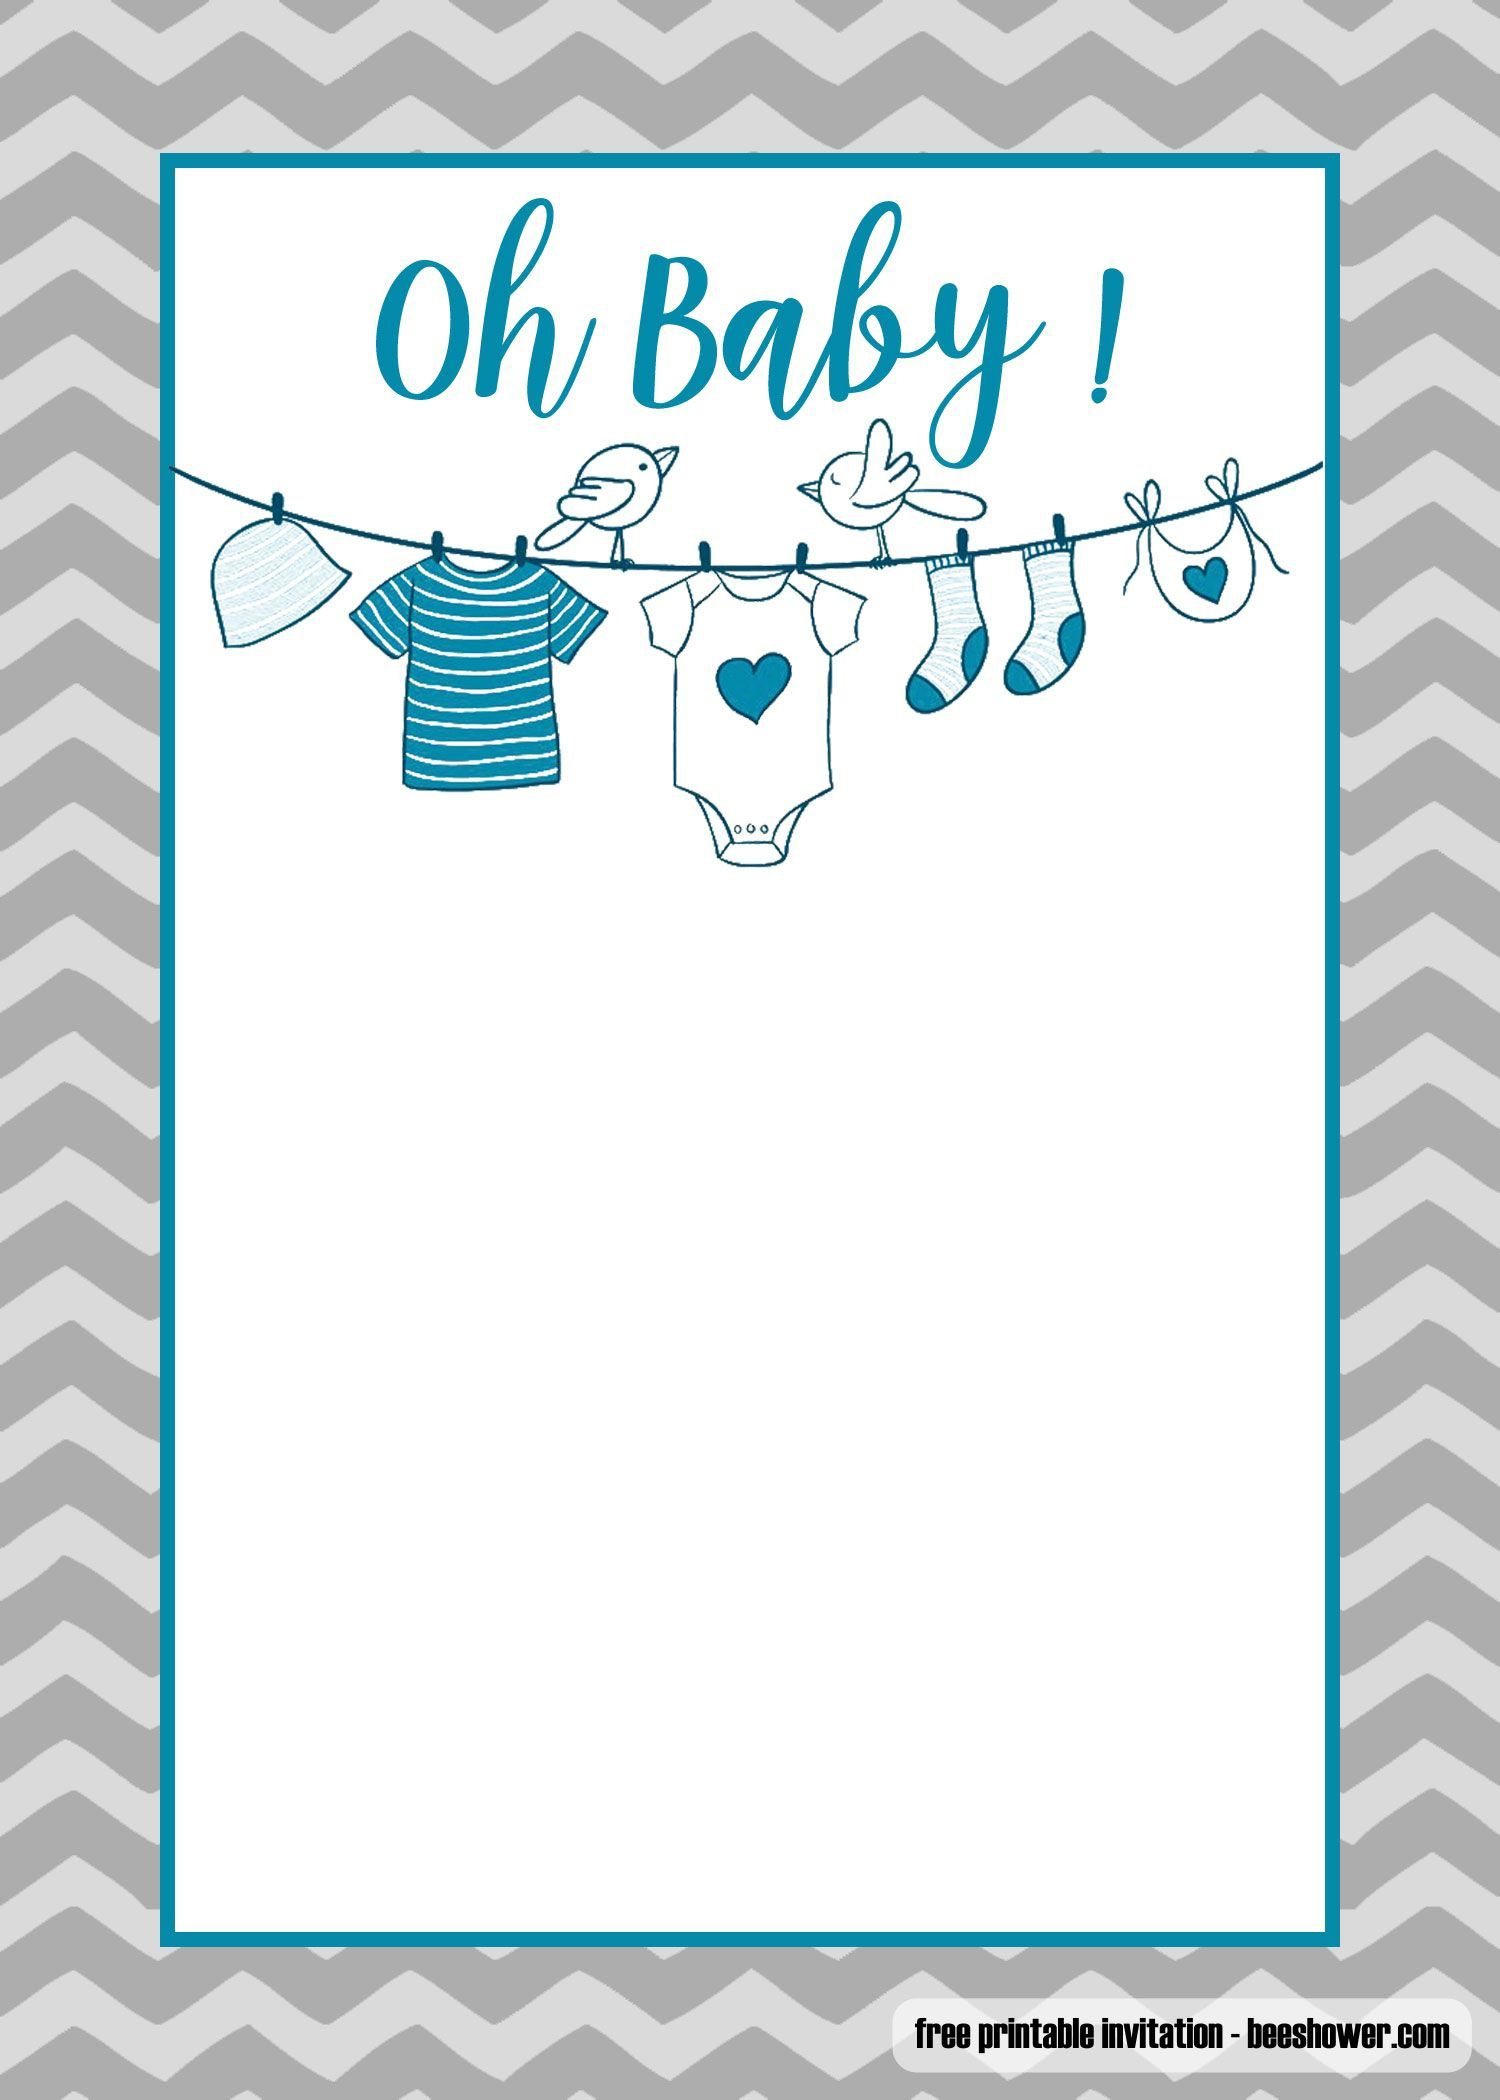 008 Unforgettable Free Baby Shower Invitation Template To Print High Definition  Printable Princes For A BoyFull